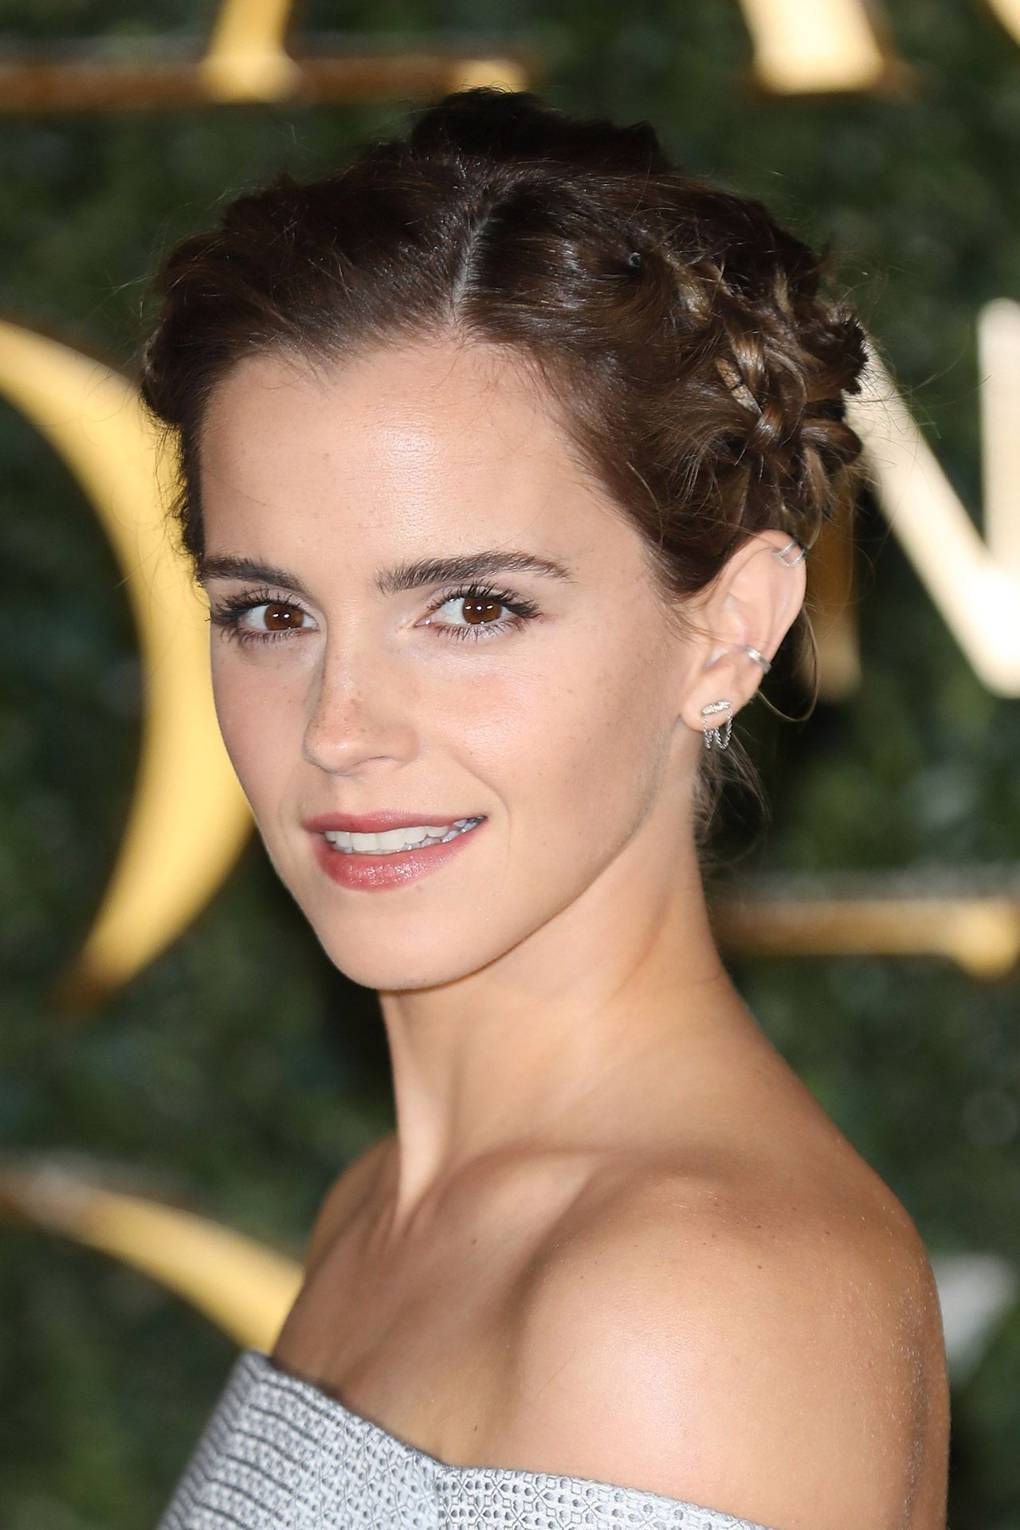 emma watson beauty regime - interview | british vogue